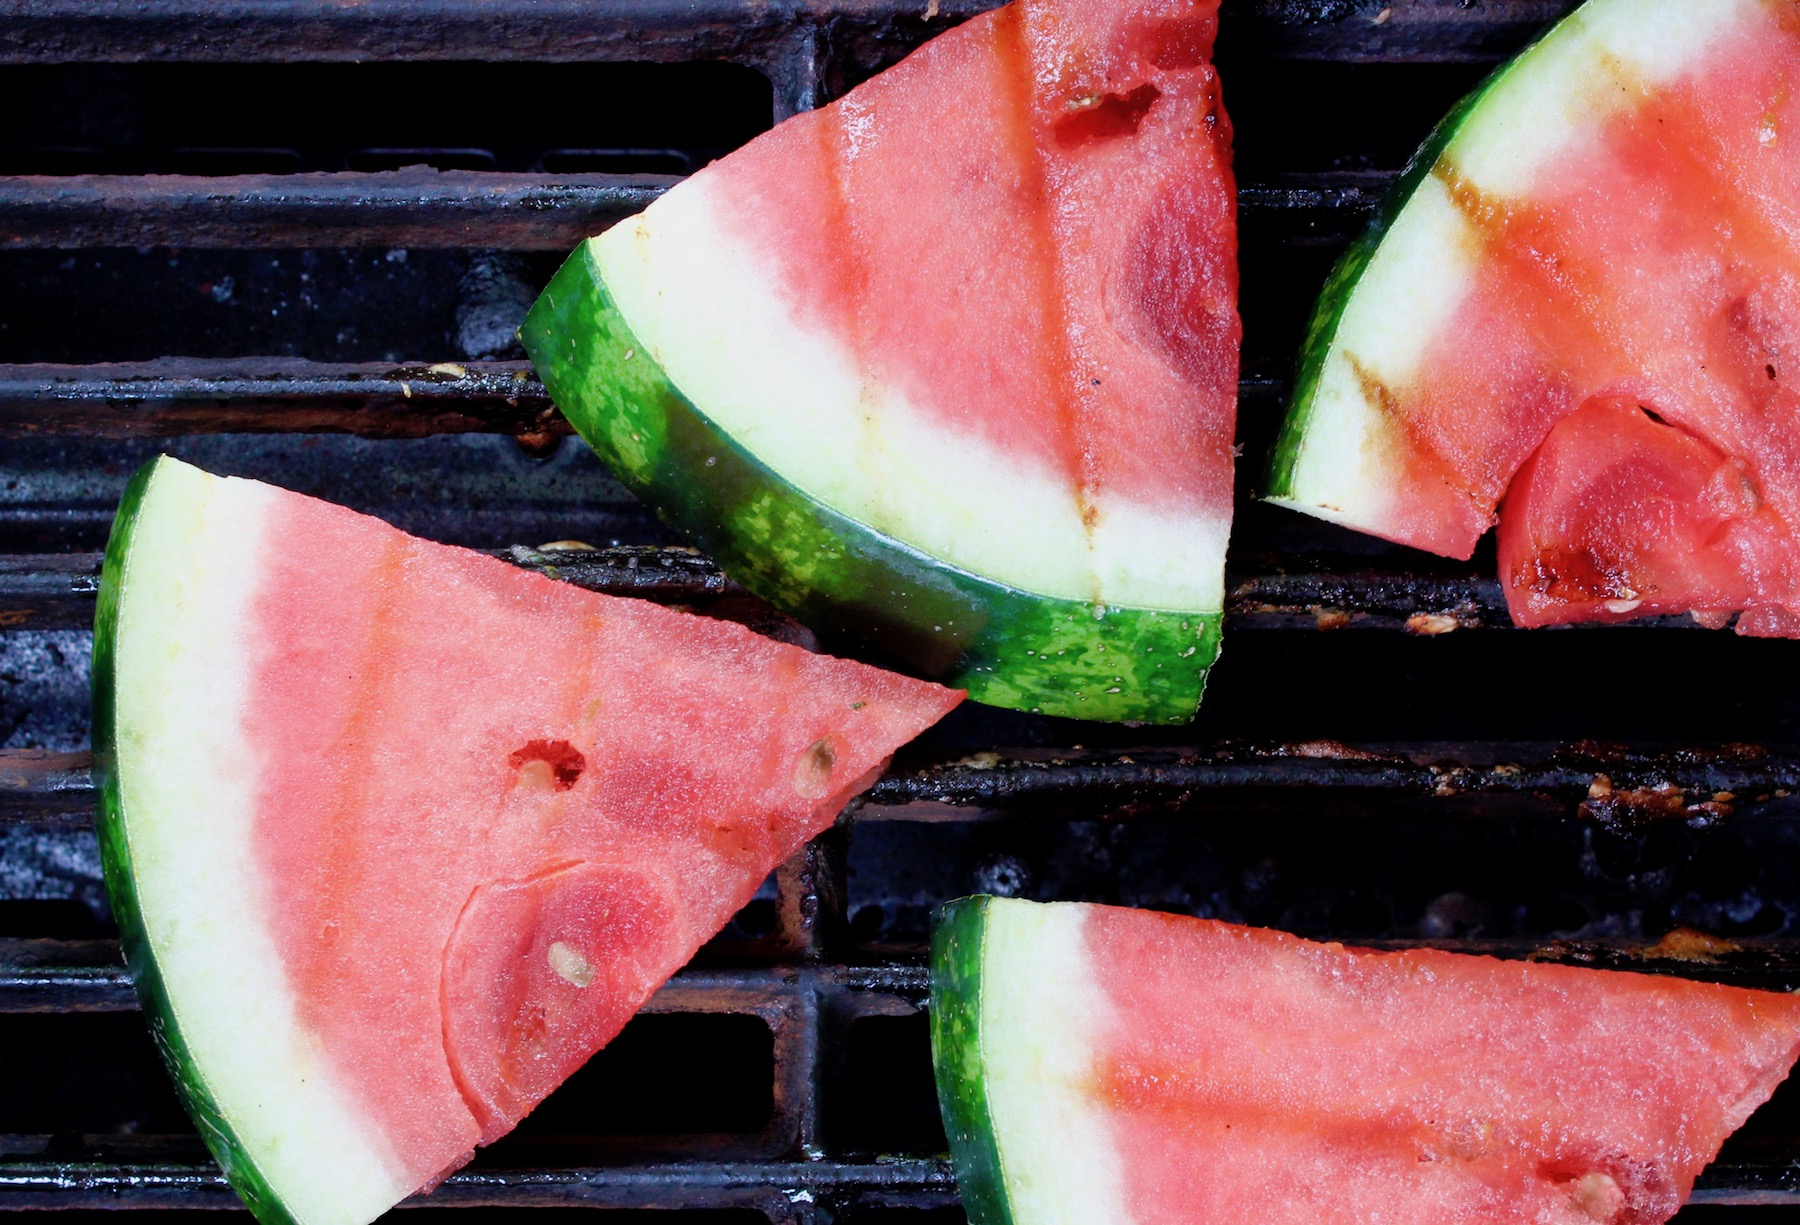 watermelon on grill